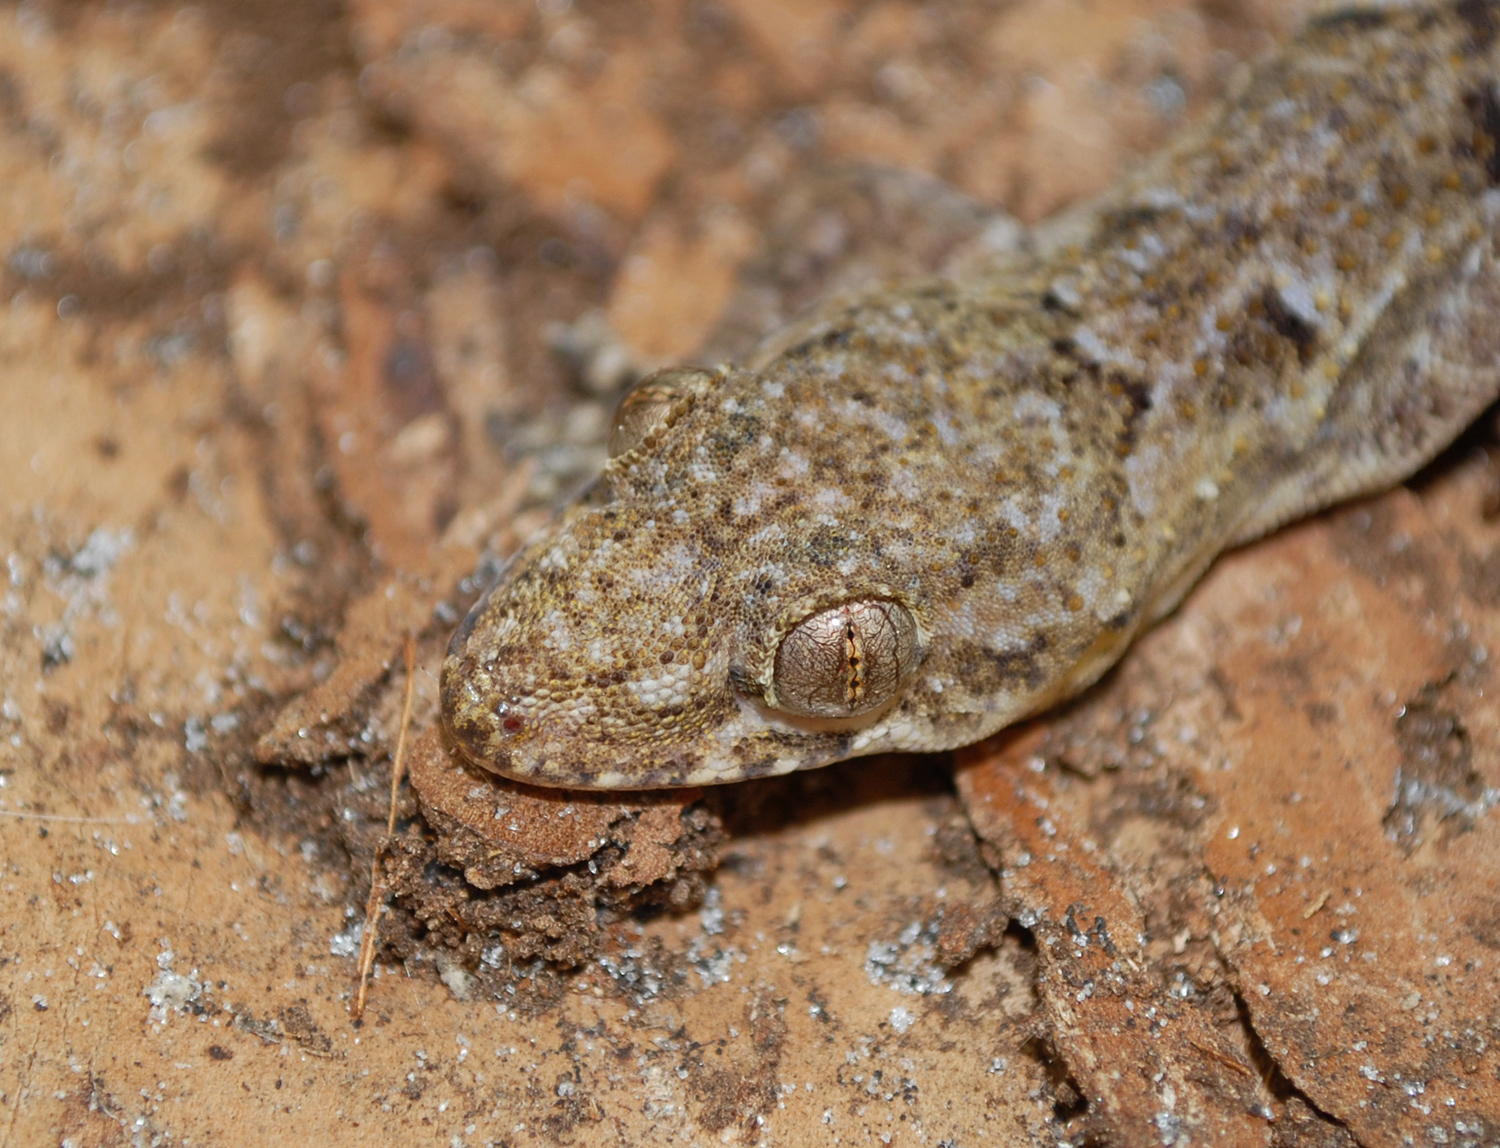 Invasive Lizards Adapting To Florida's Cold Weather